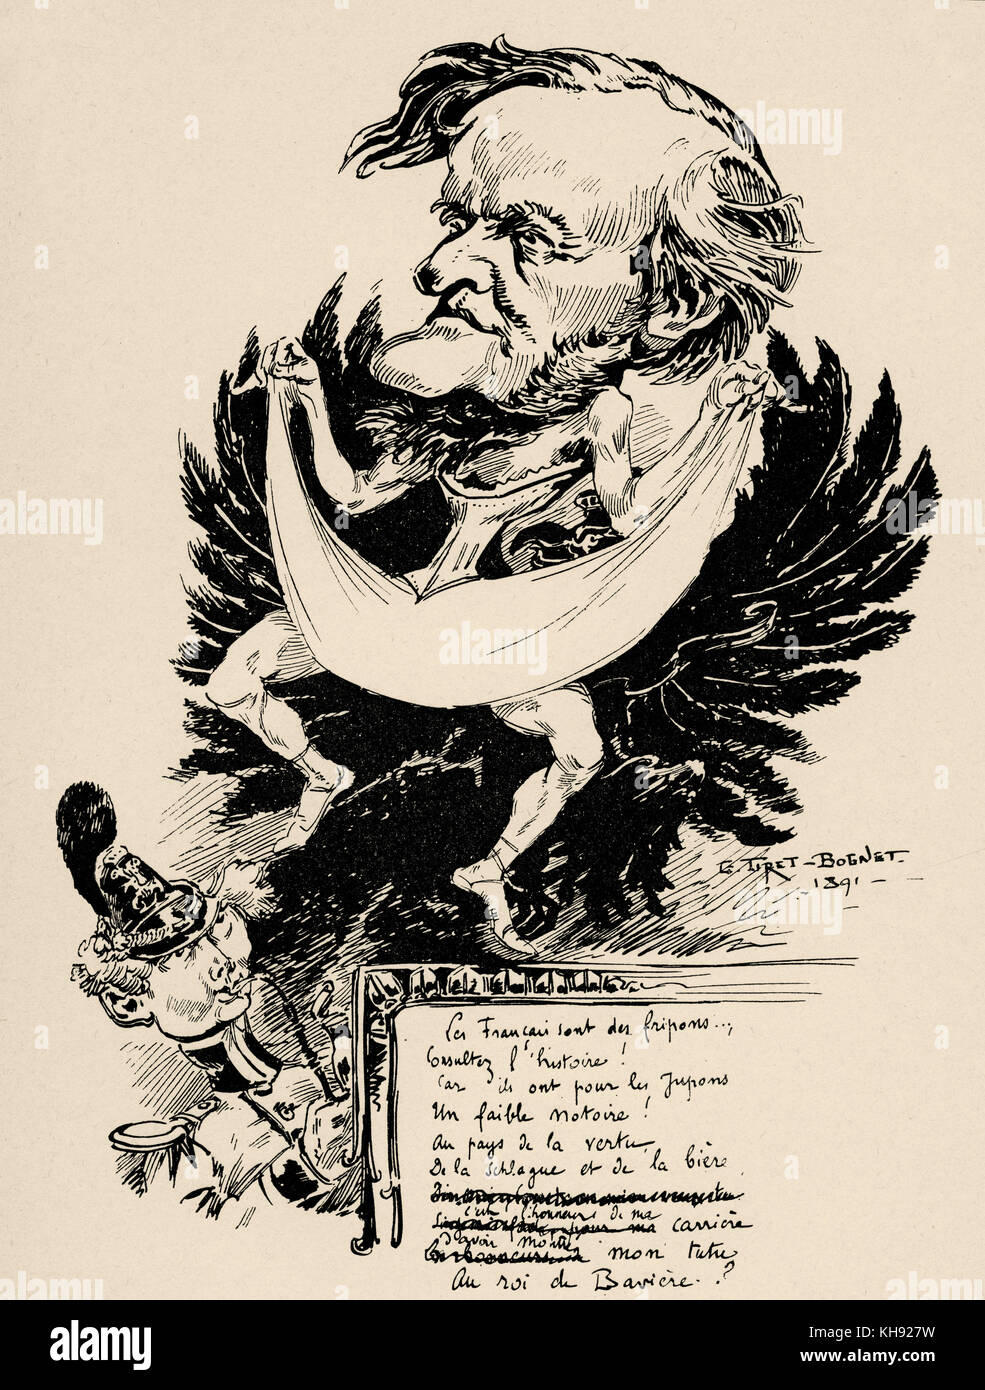 Wagner as a dancer of Munich Court Theatre - caricature by Tiret- Bognet.  RW: German composer & author, 22 - Stock Image